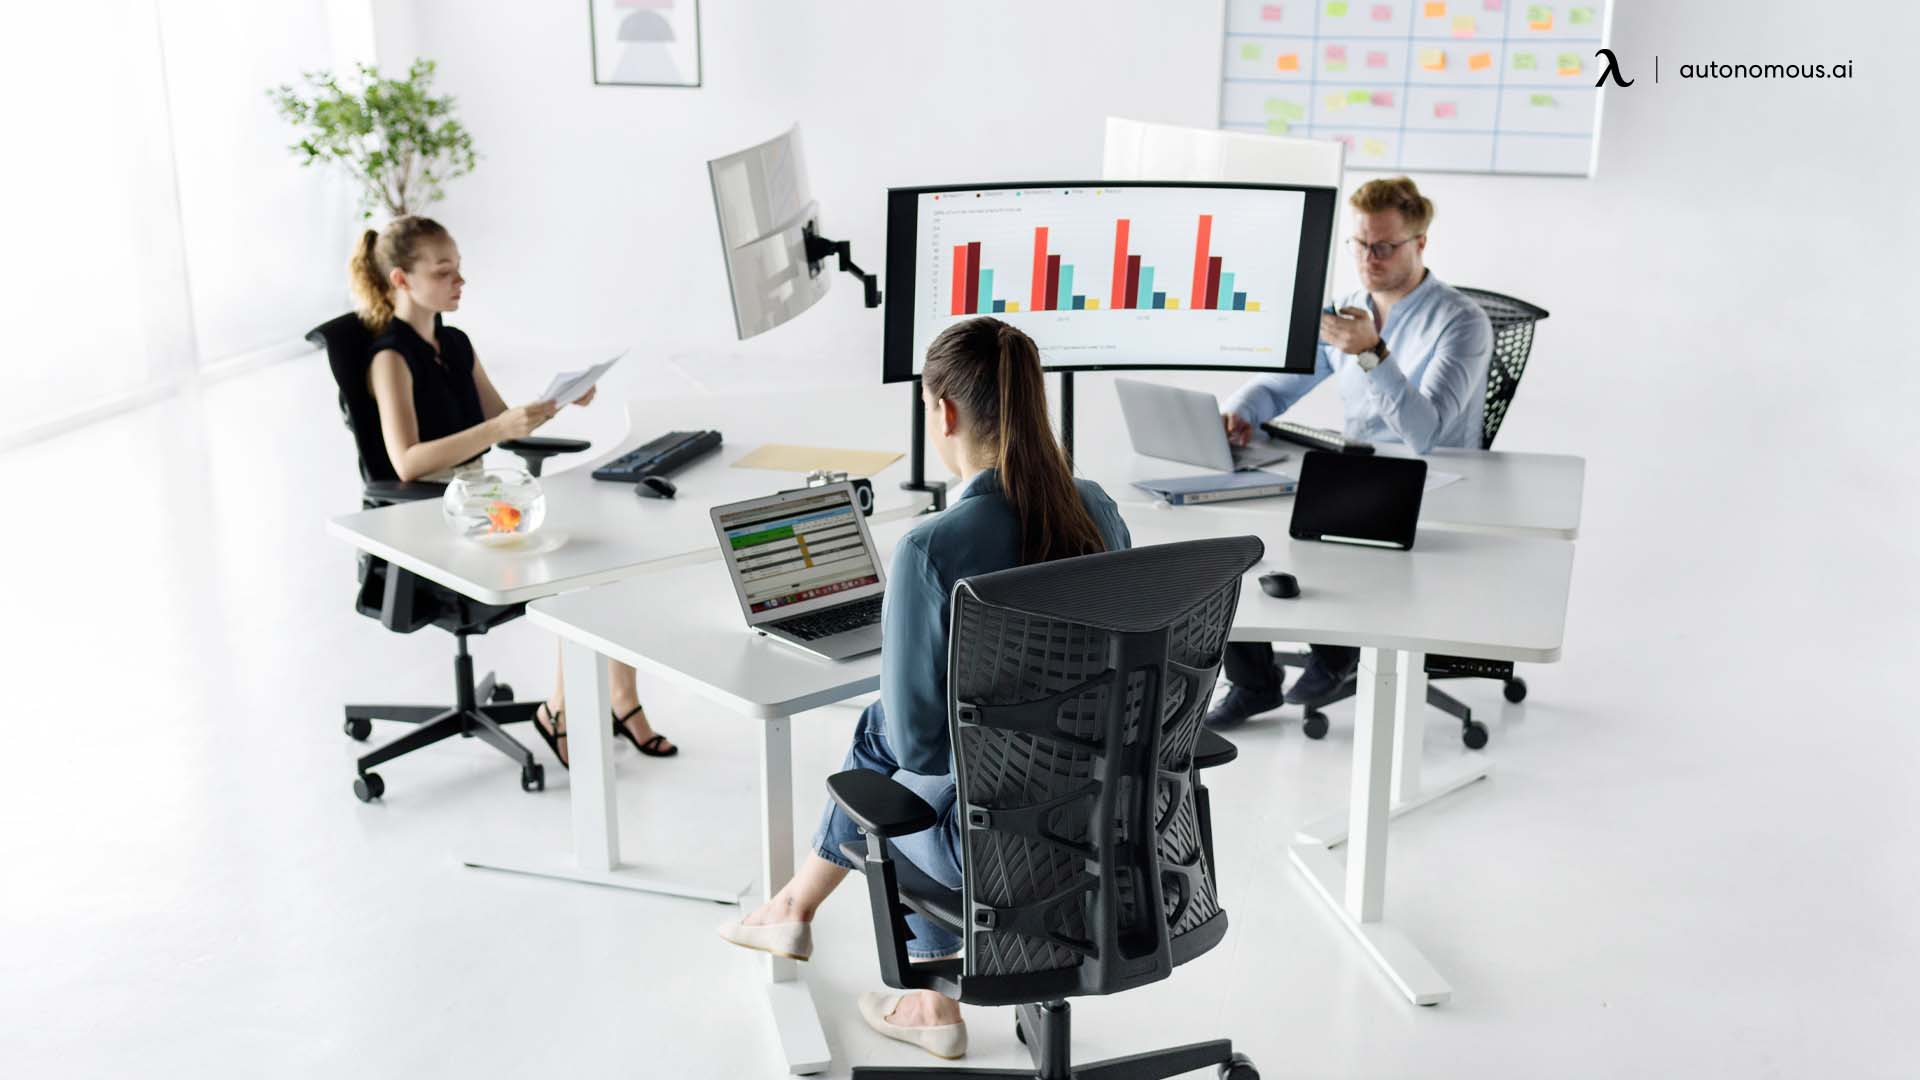 disadvantages of the open office space design